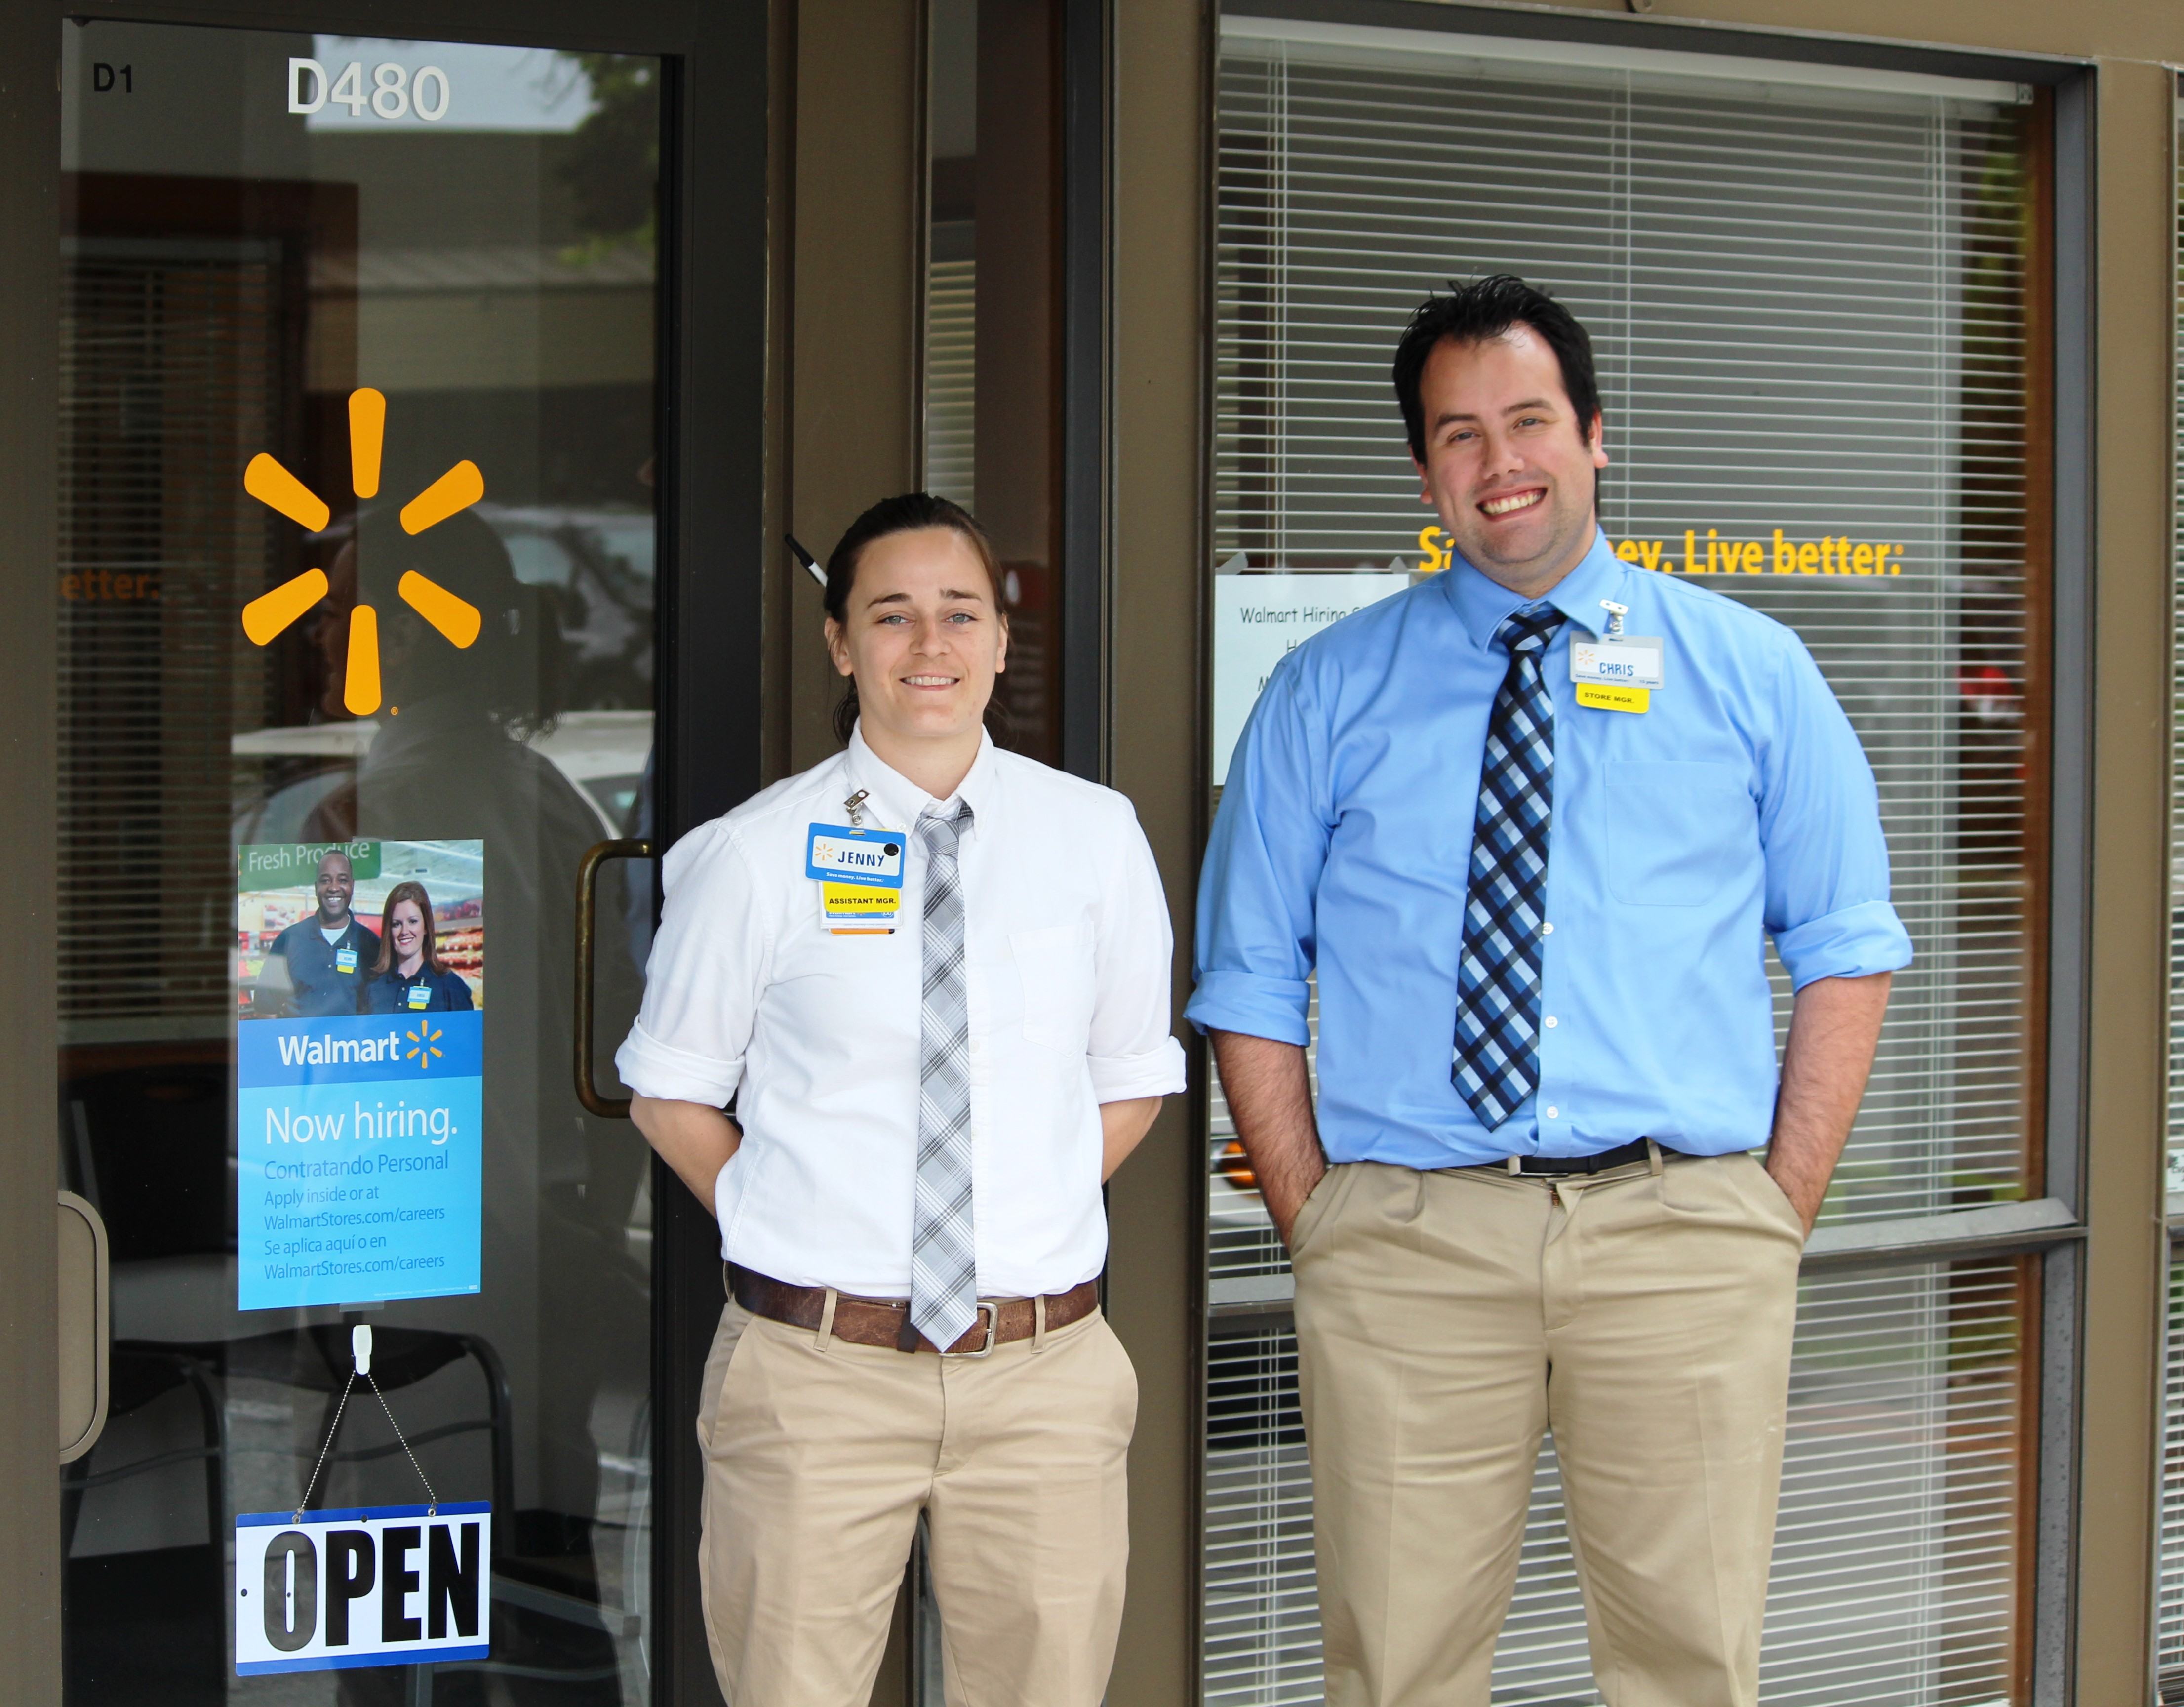 walmart management Learn more about store management jobs at walmart apply online today.